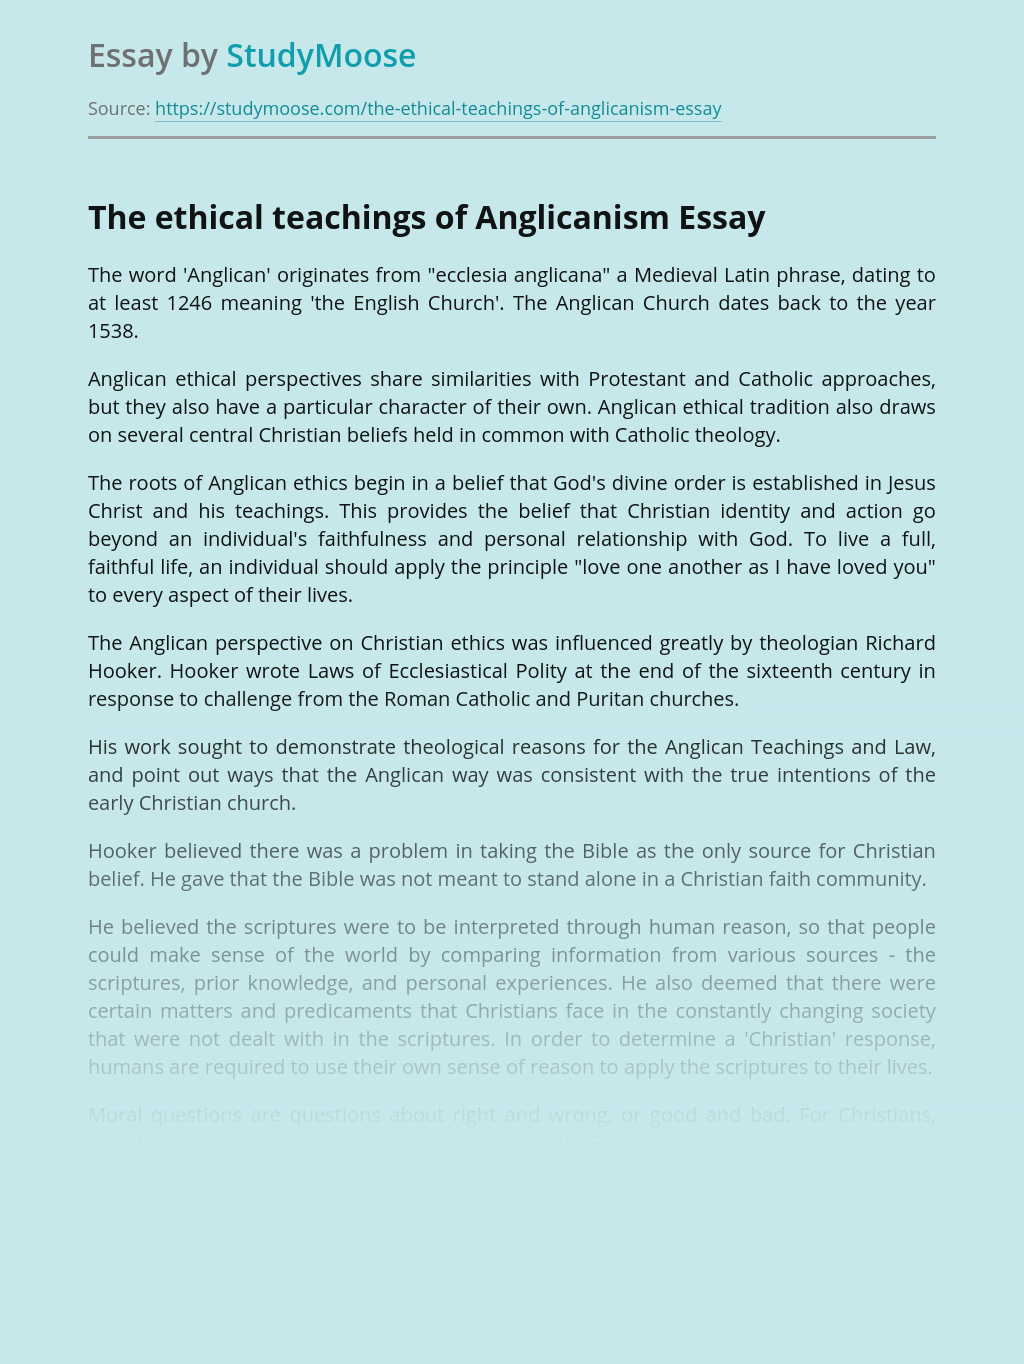 The ethical teachings of Anglicanism